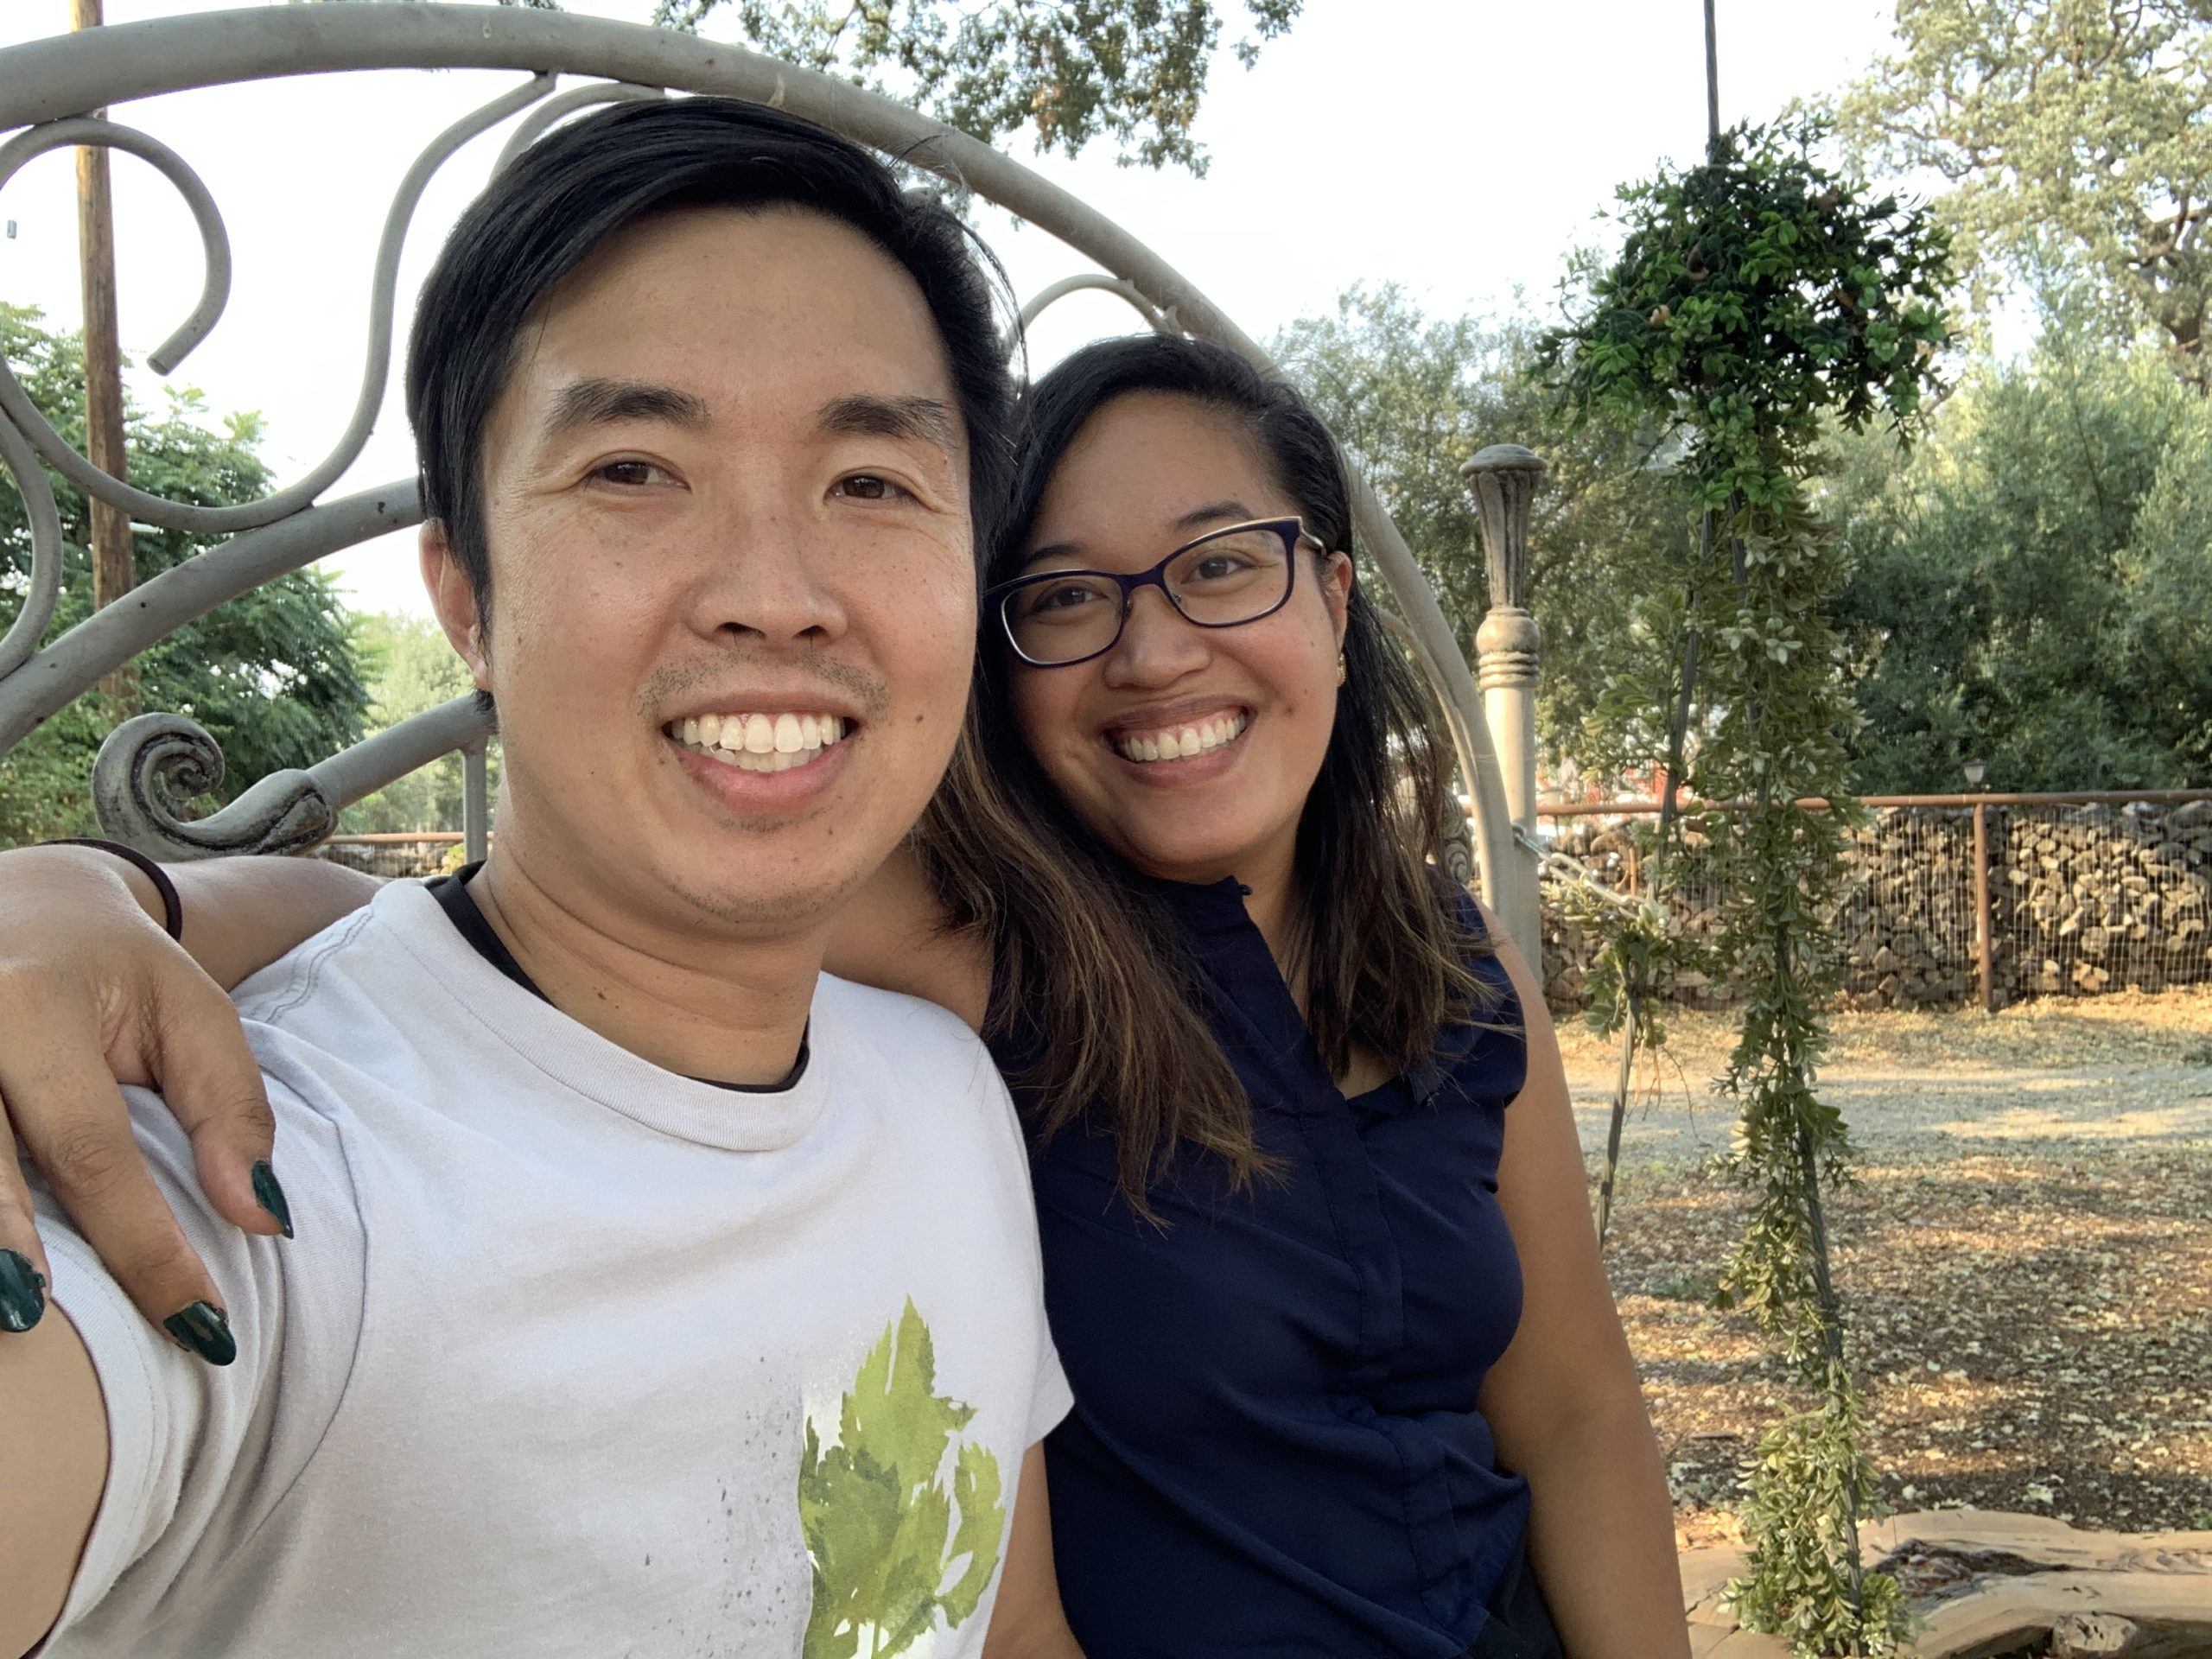 Vacationing in Paso Robles